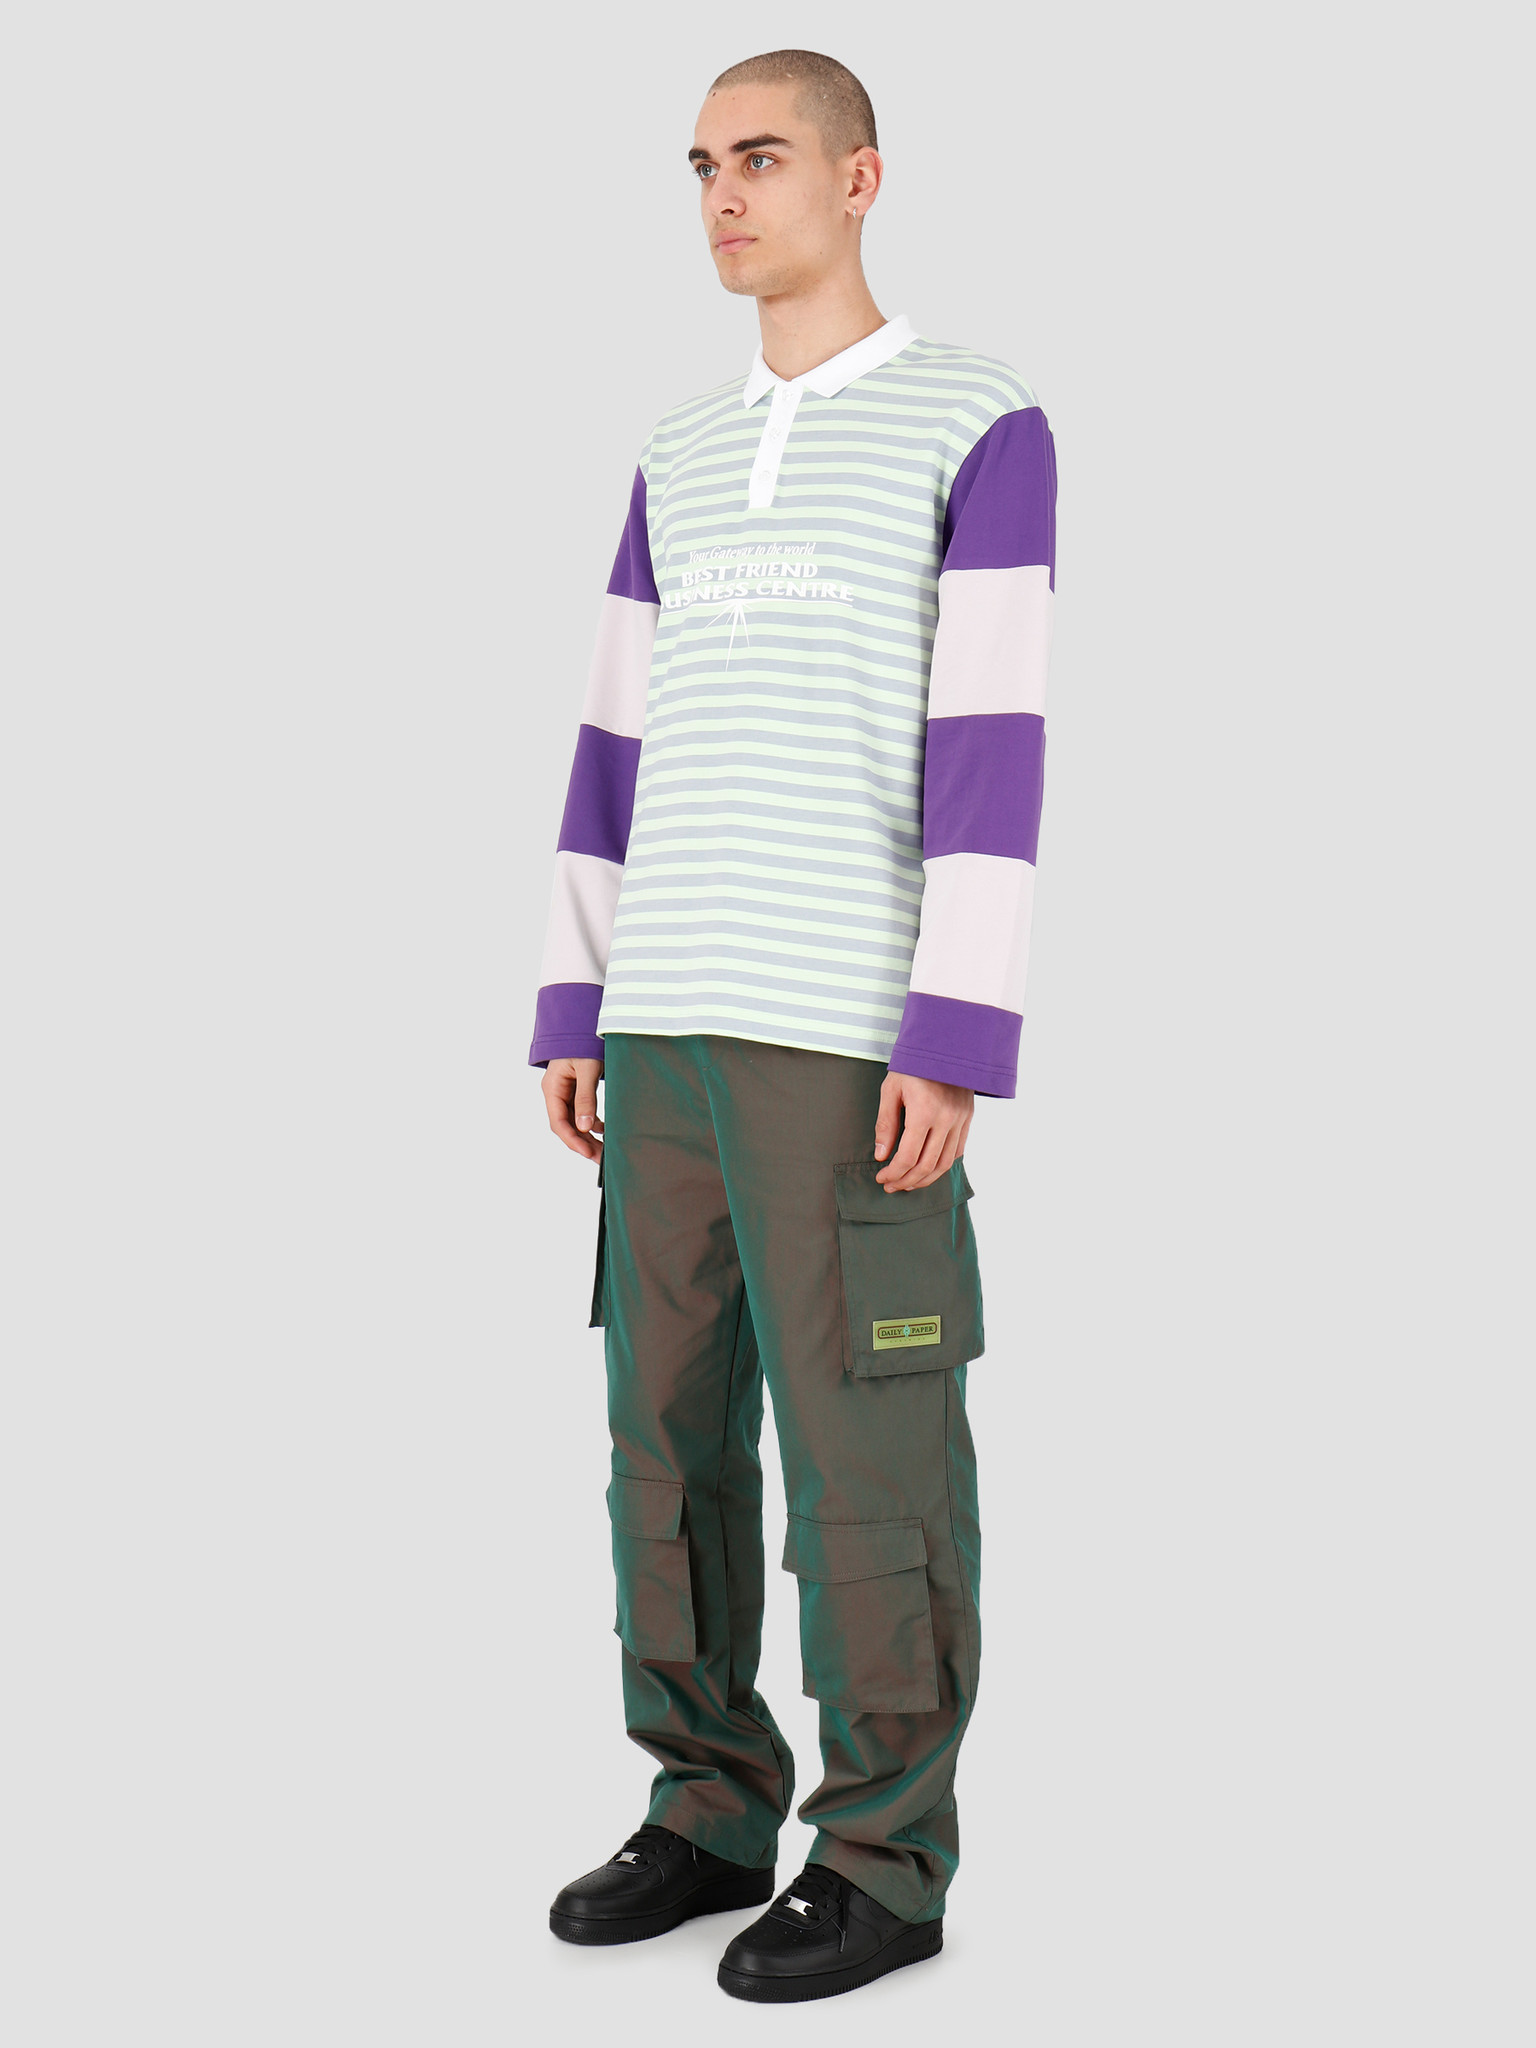 Daily Paper Daily Paper Hapolo Longsleeve Green Purple Stripe 20S1LS02-01